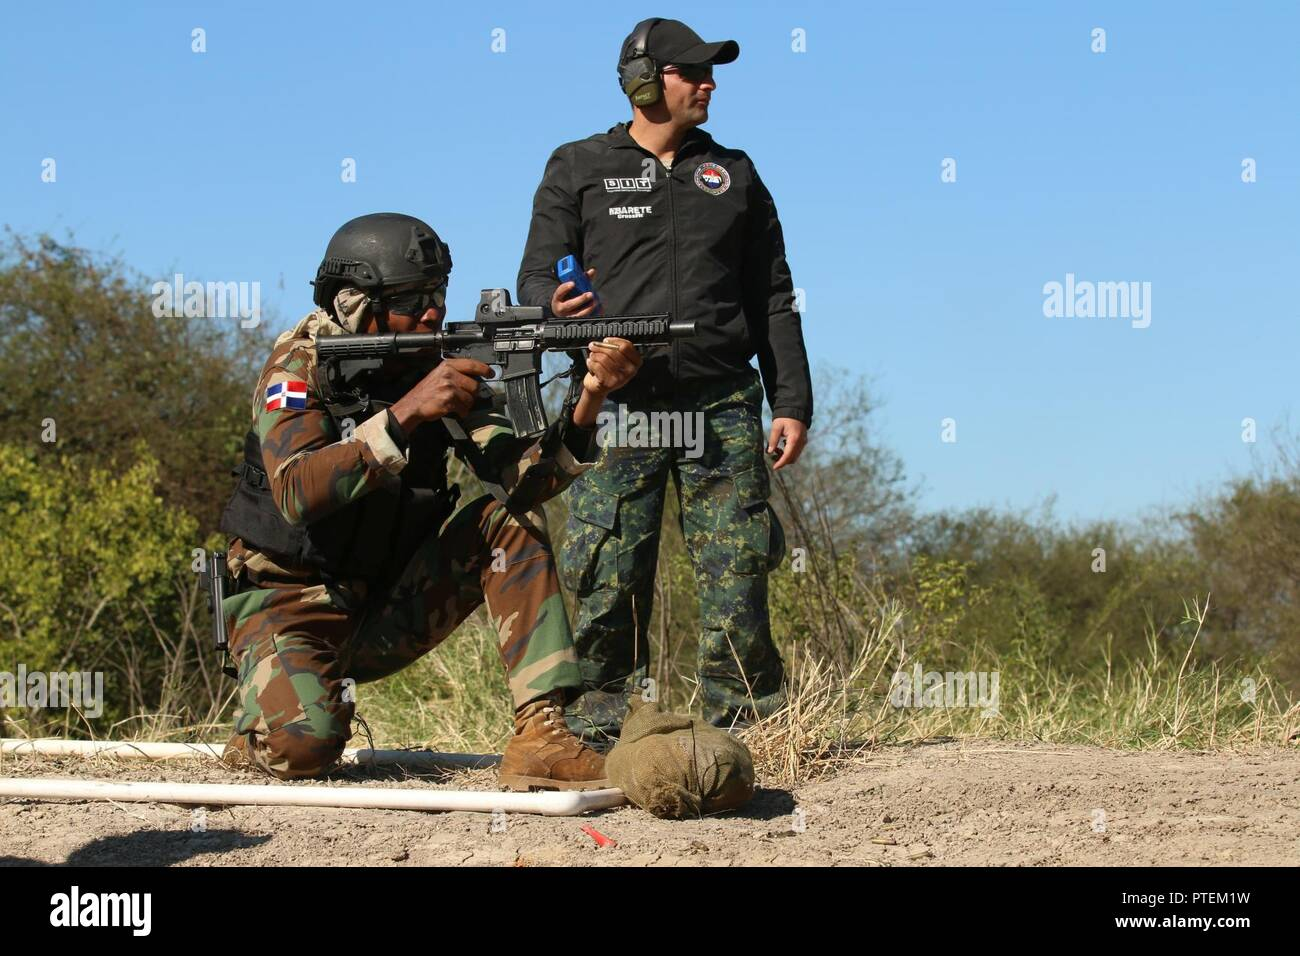 A Dominican competitor fires his weapon down range in the Critical Task Evaluation 2 event of the Fuerzas Comando competition July 18, 2017 at Vista Alegre in Presidente Hayes, Paraguay. The competition increases the sharing of expertise among the region's highly-skilled special operation forces. Stock Photo